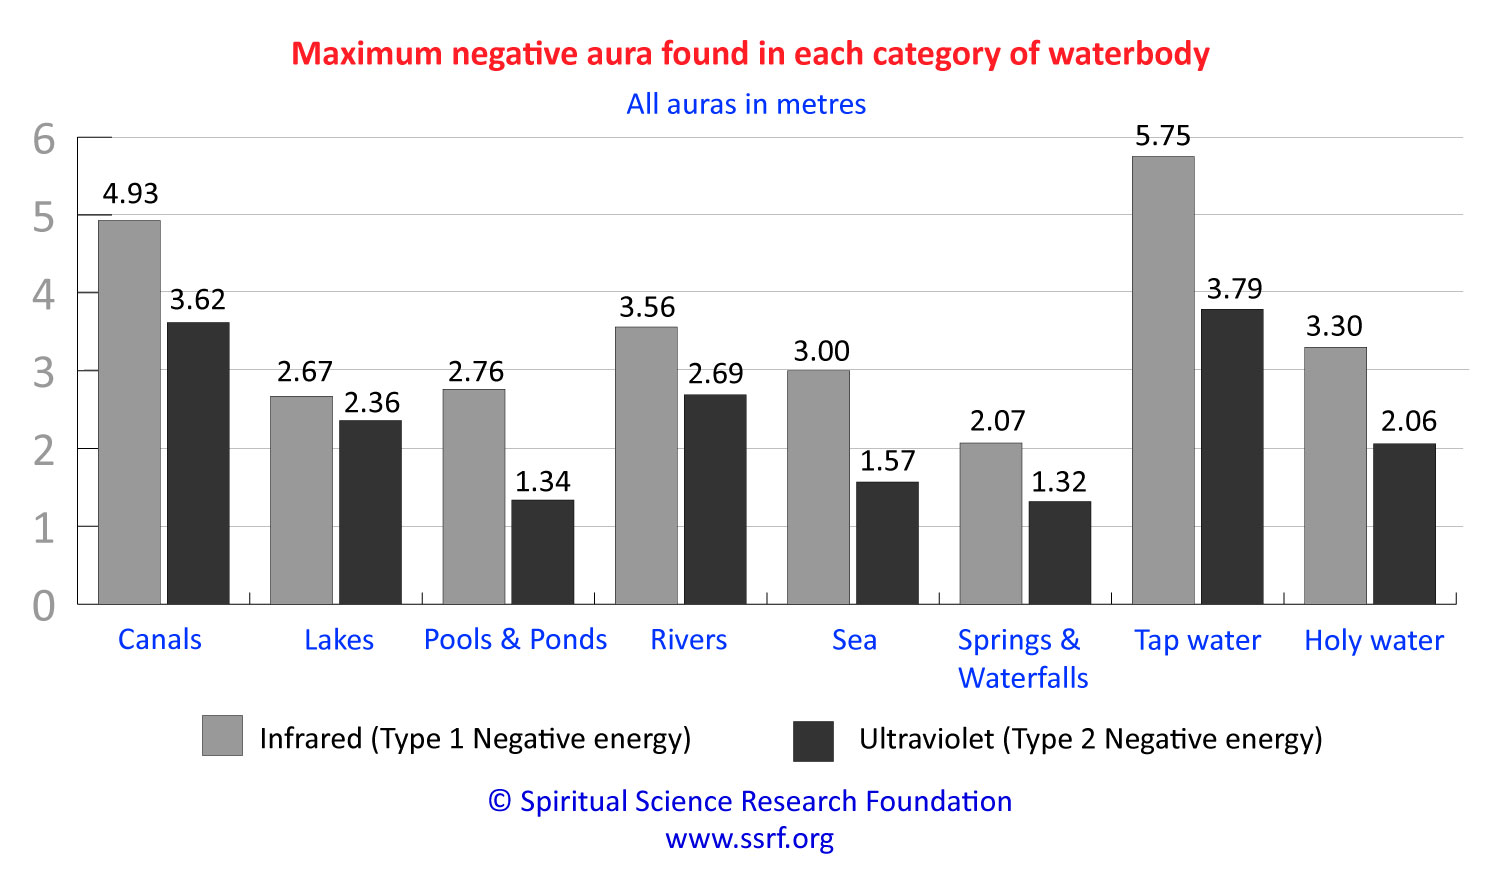 Maximum negativity found in waterbodies